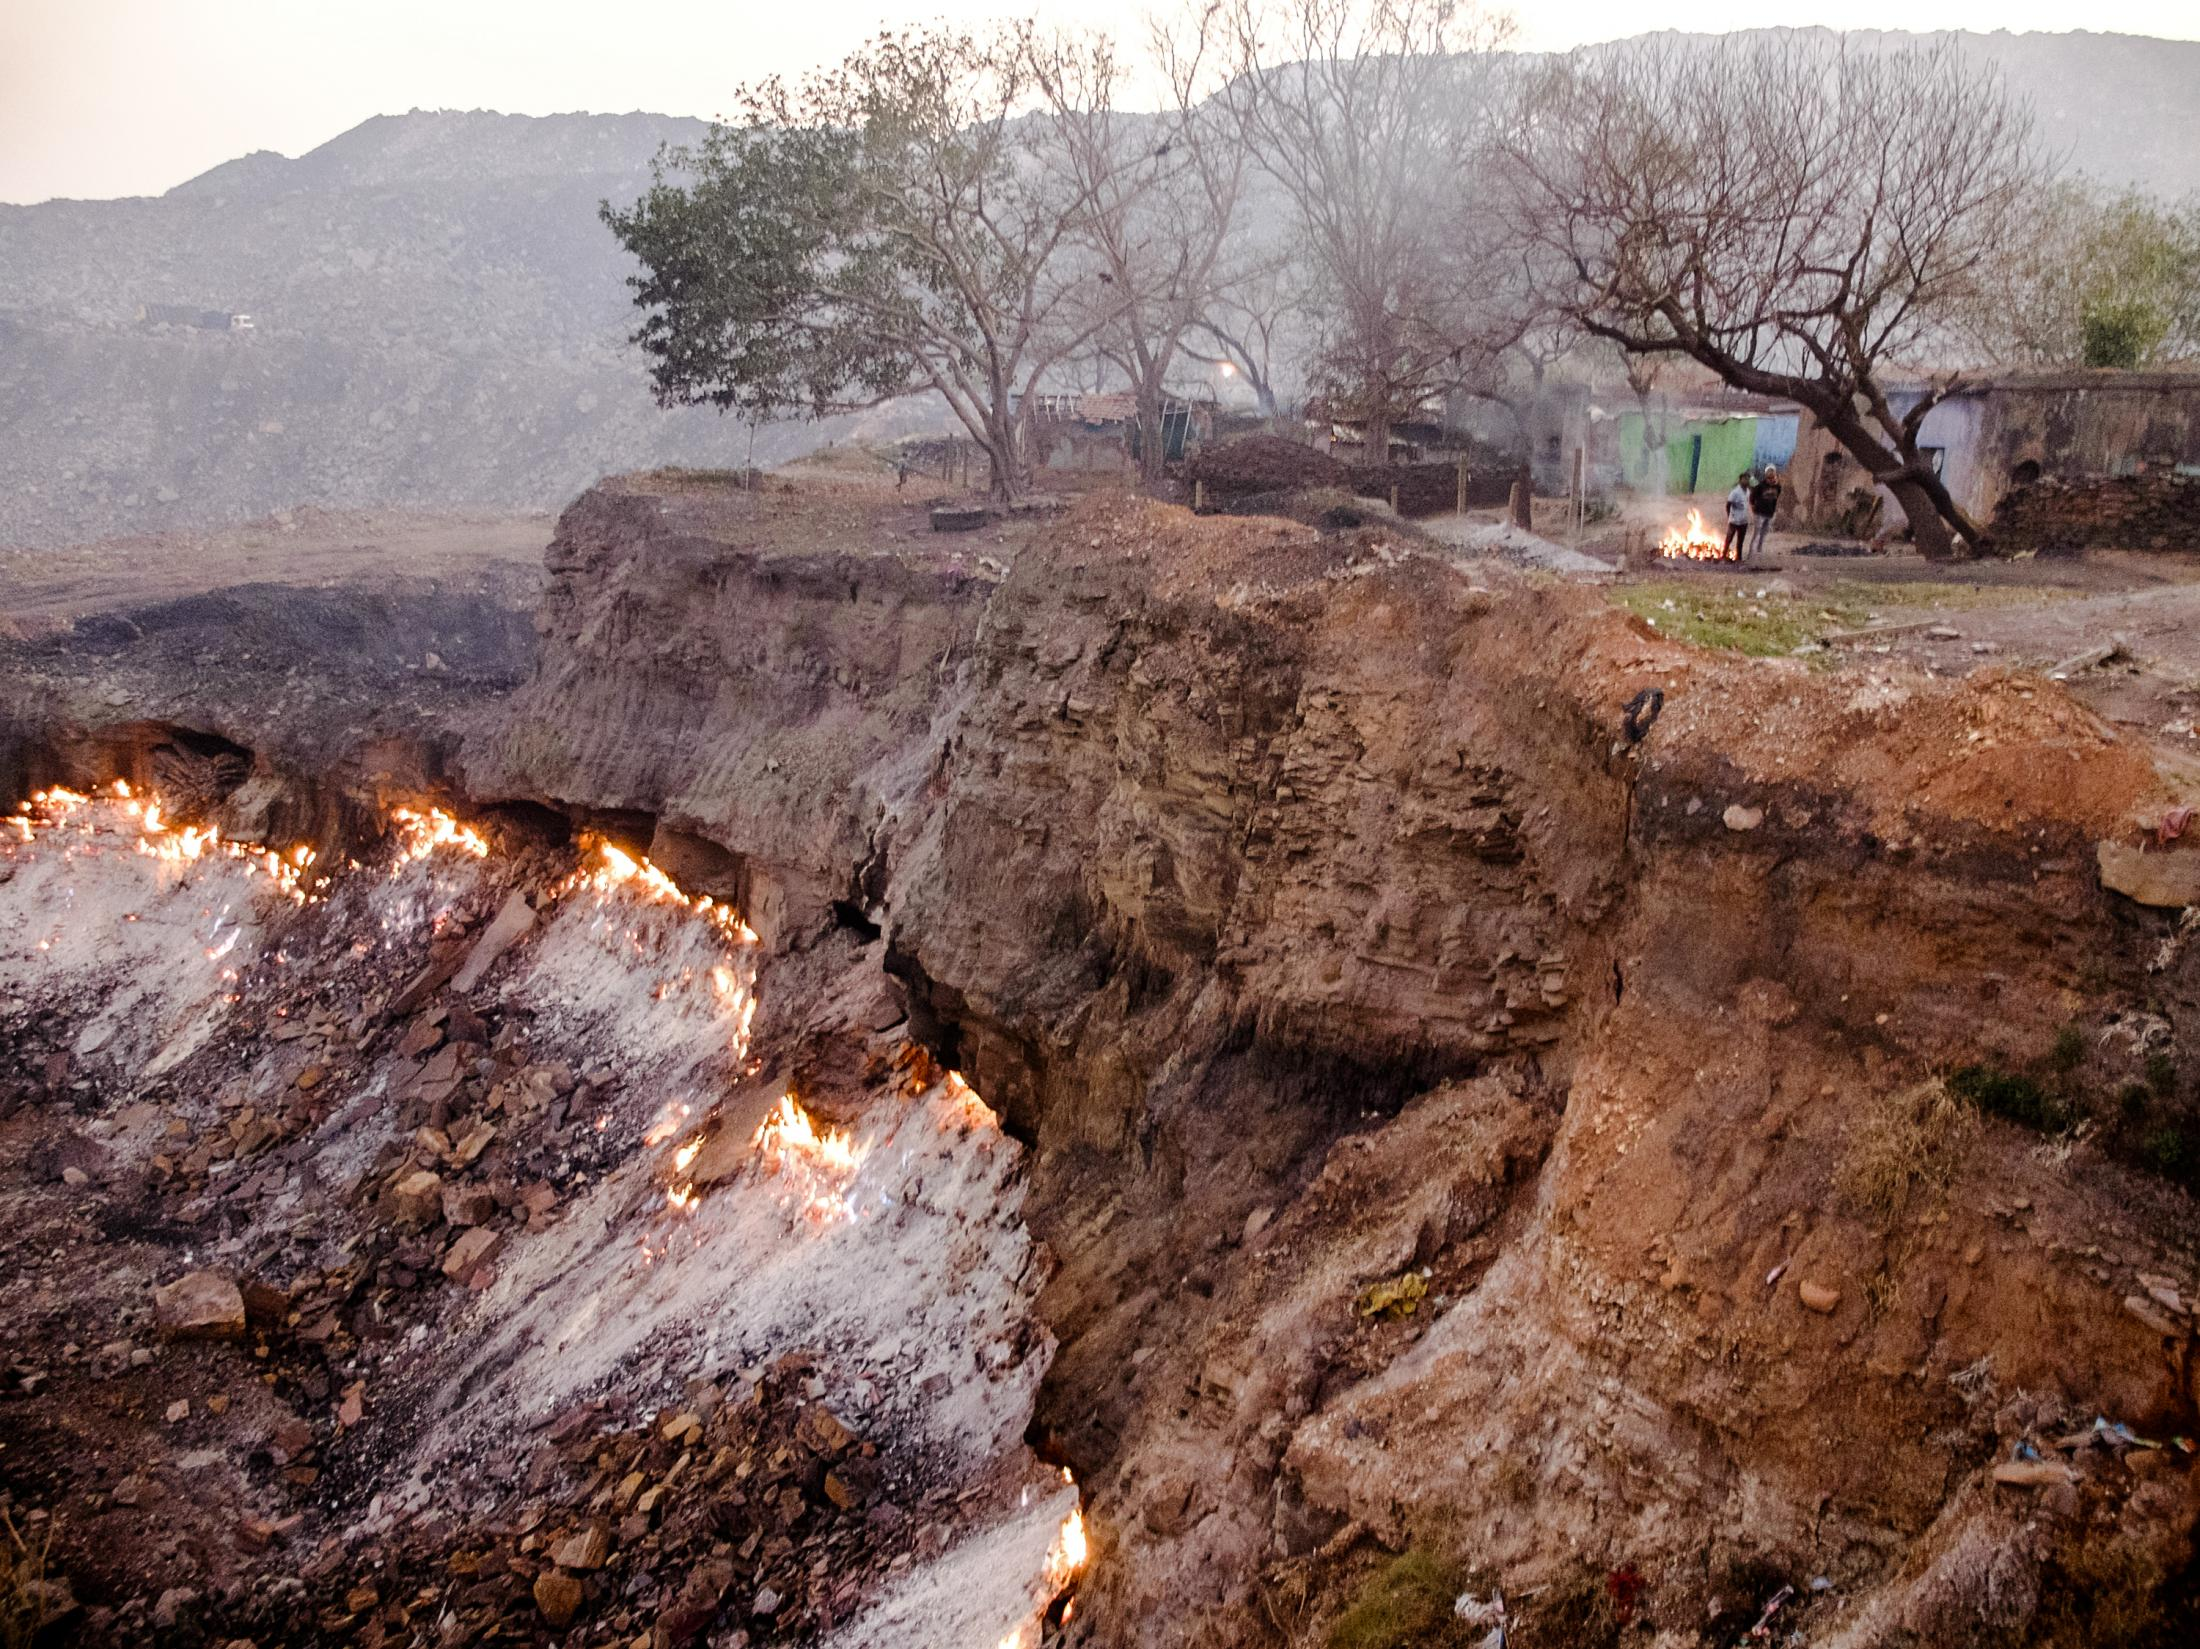 Flames break through the ground from coal fires that burn underground at an open cast mine in Laltanganj village. Many of the villagers are relocated to Belgaria as part of the goverment's help program, but some of the villagers refused to go. India 2020